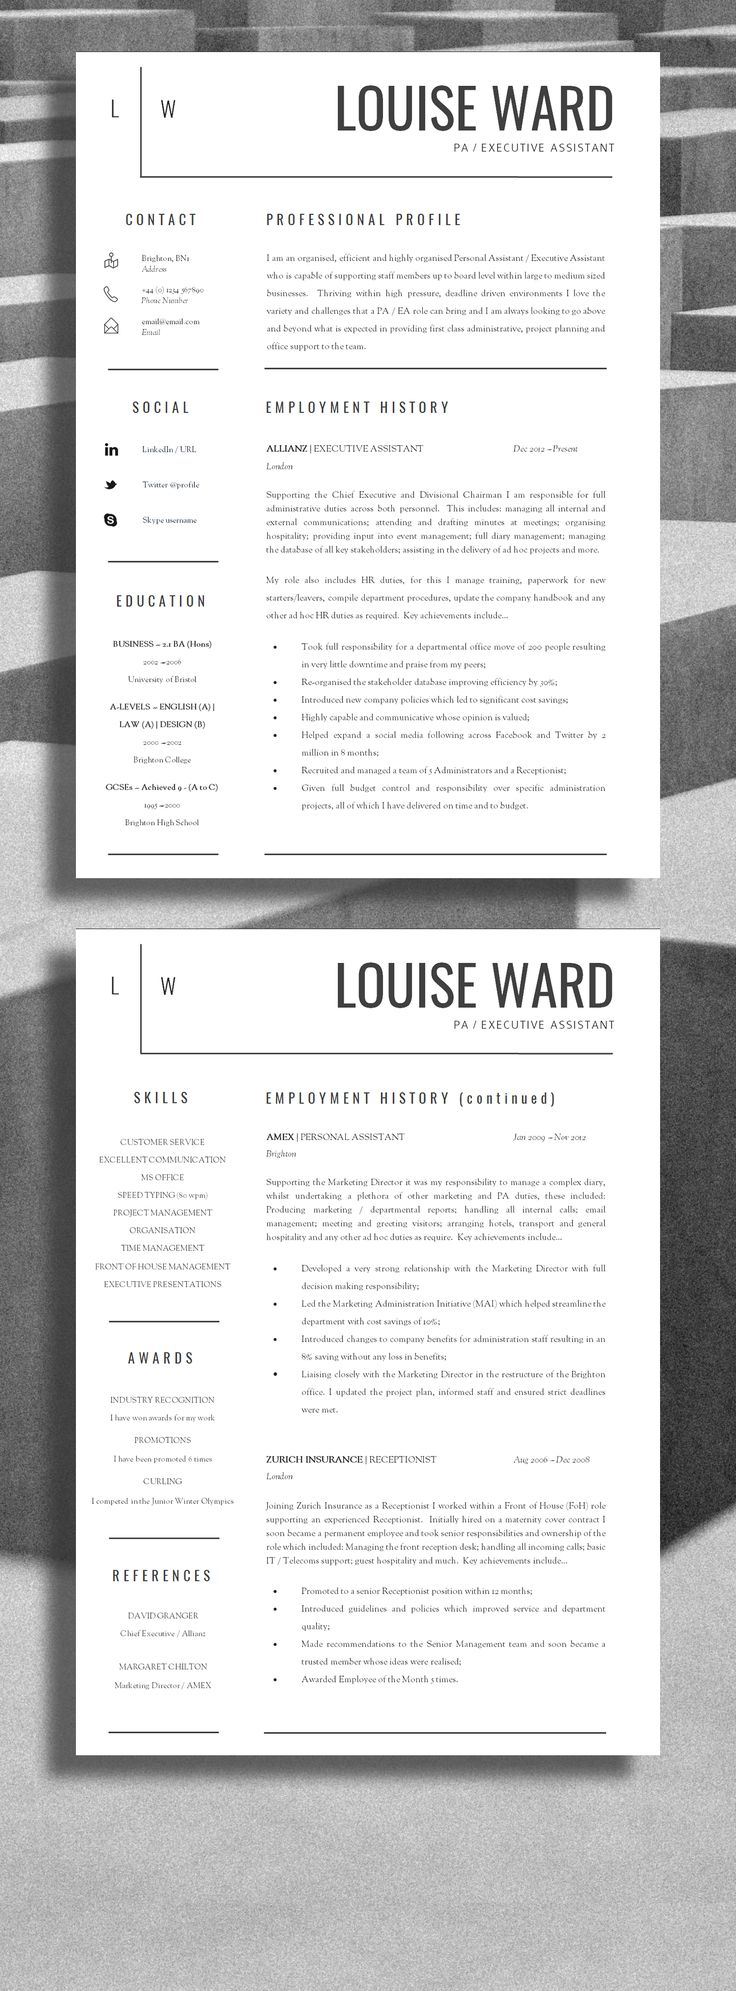 modern resume black header modern resume black